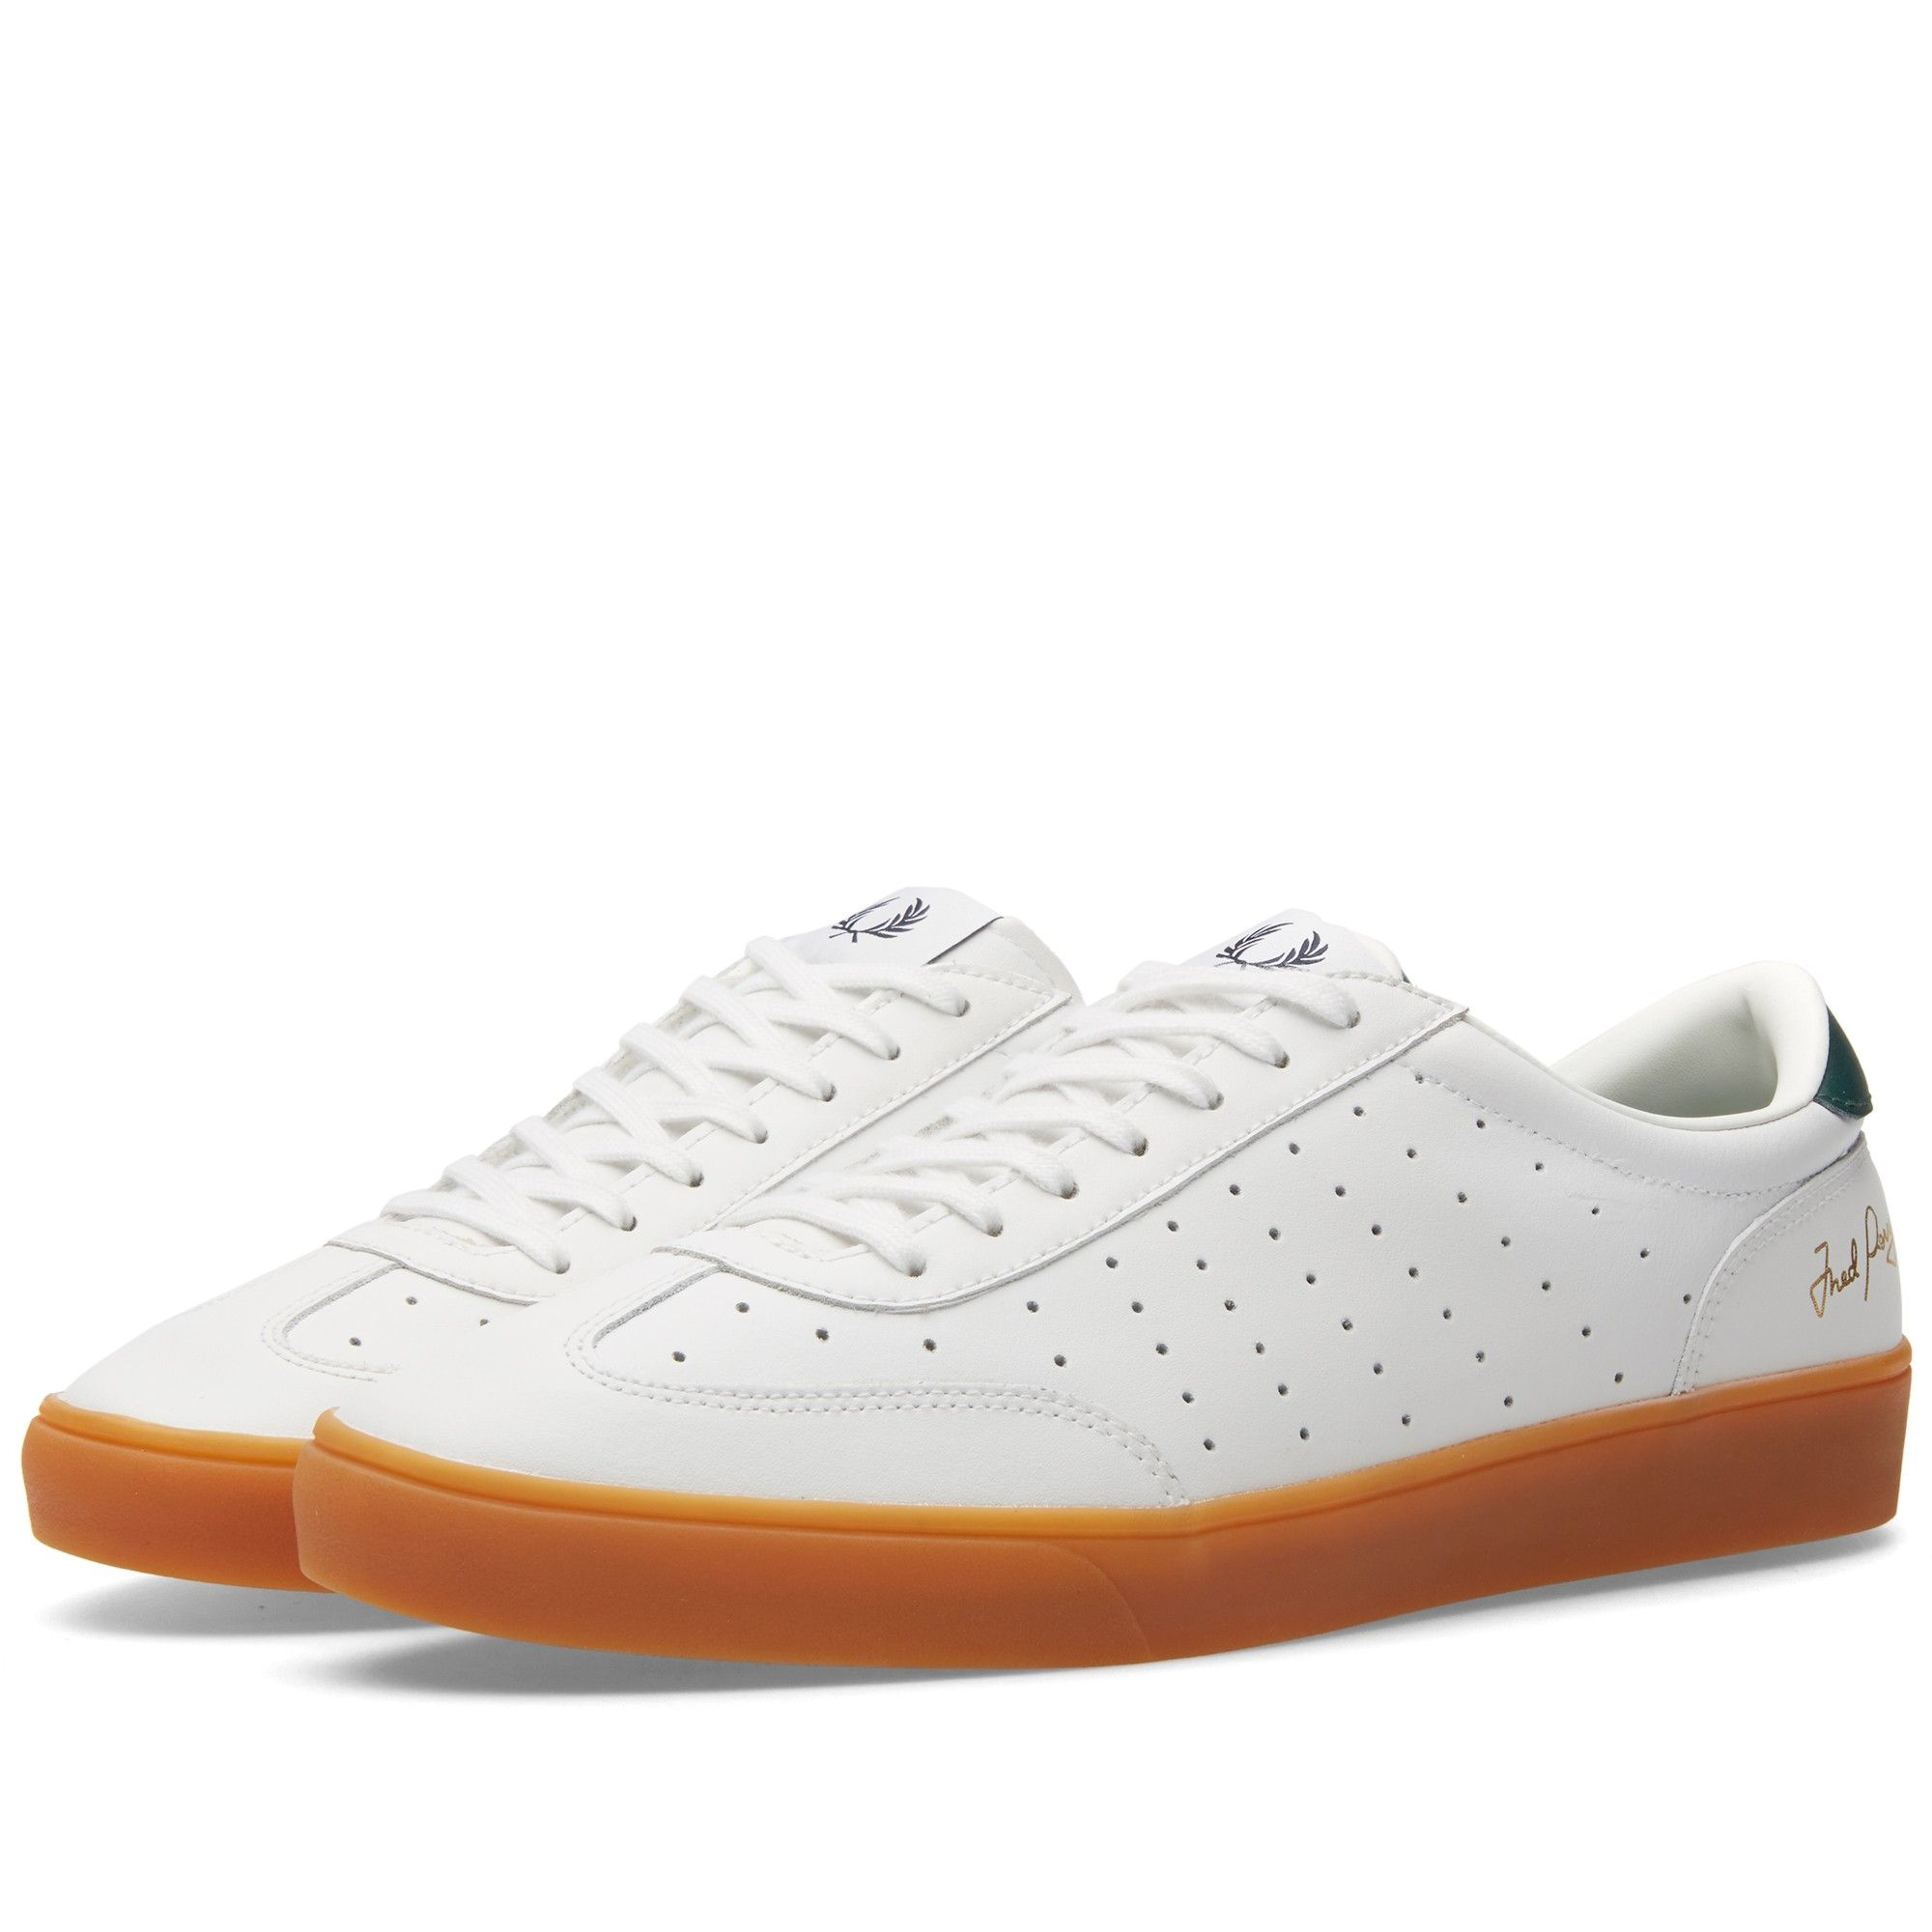 An adaptation of the classic Fred Perry tennis shoe, the Umpire is  constructed of perforated